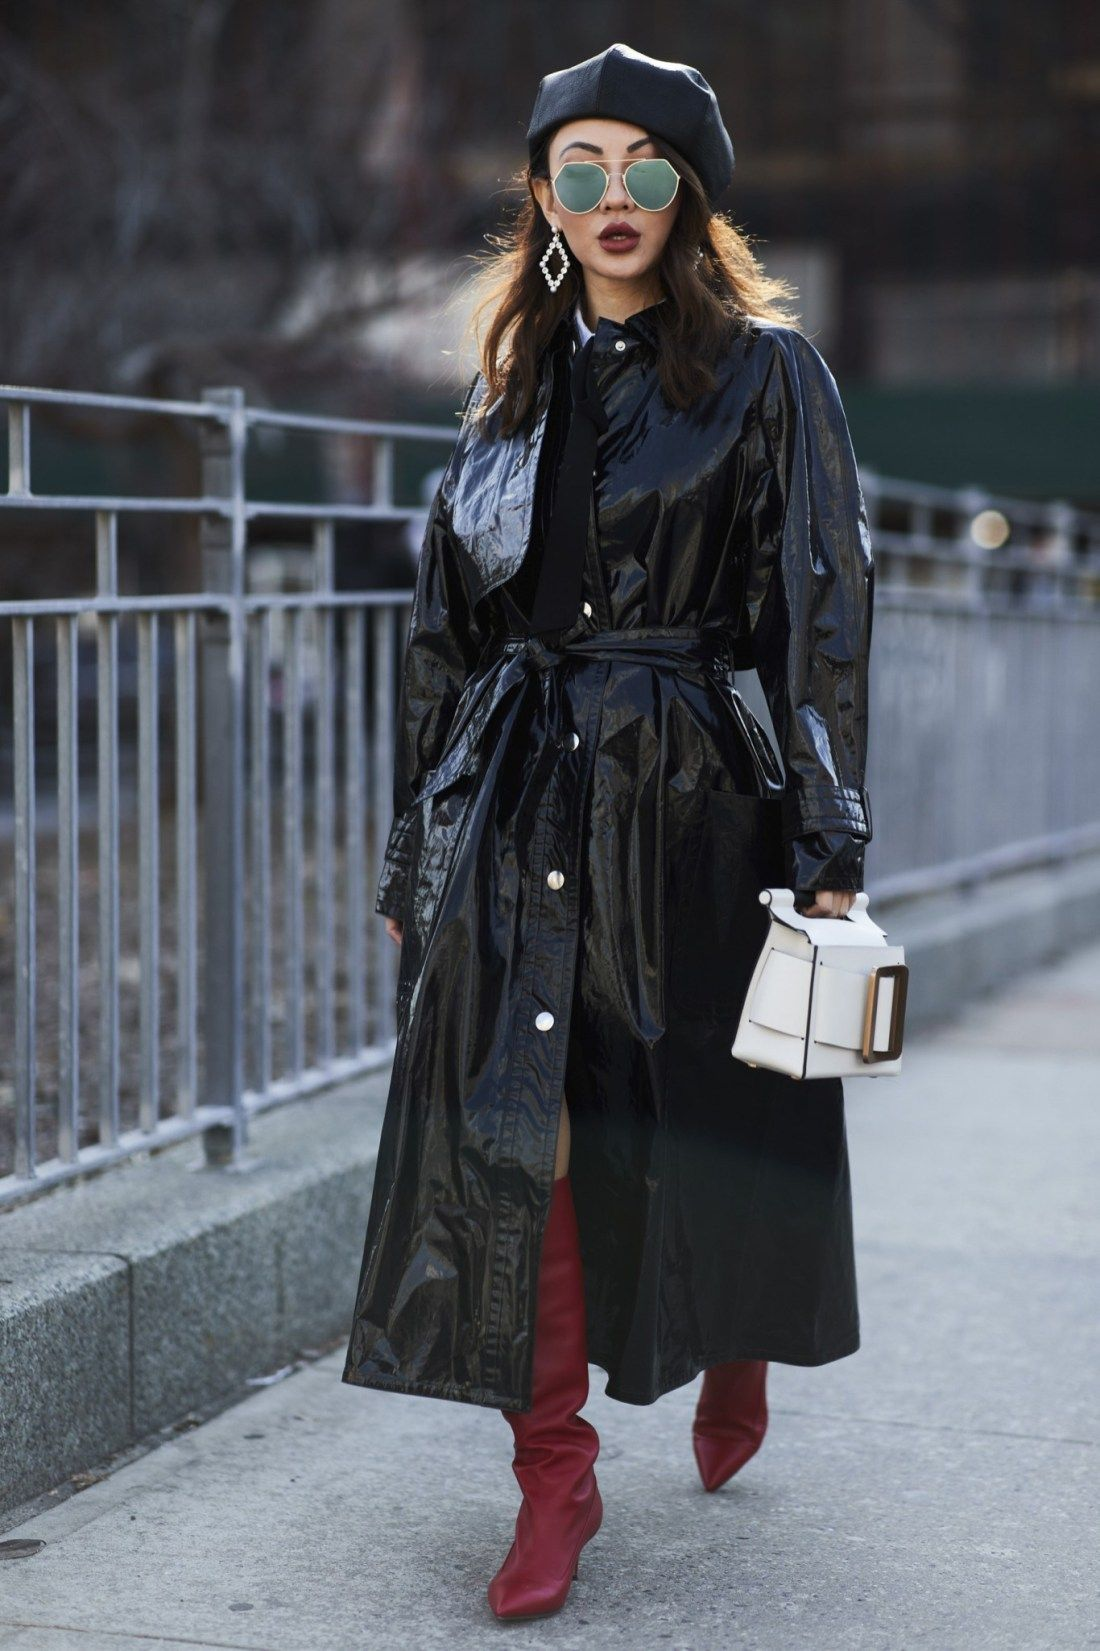 This Coat Style Is Easily One of the Biggest Trends at Fashion Week